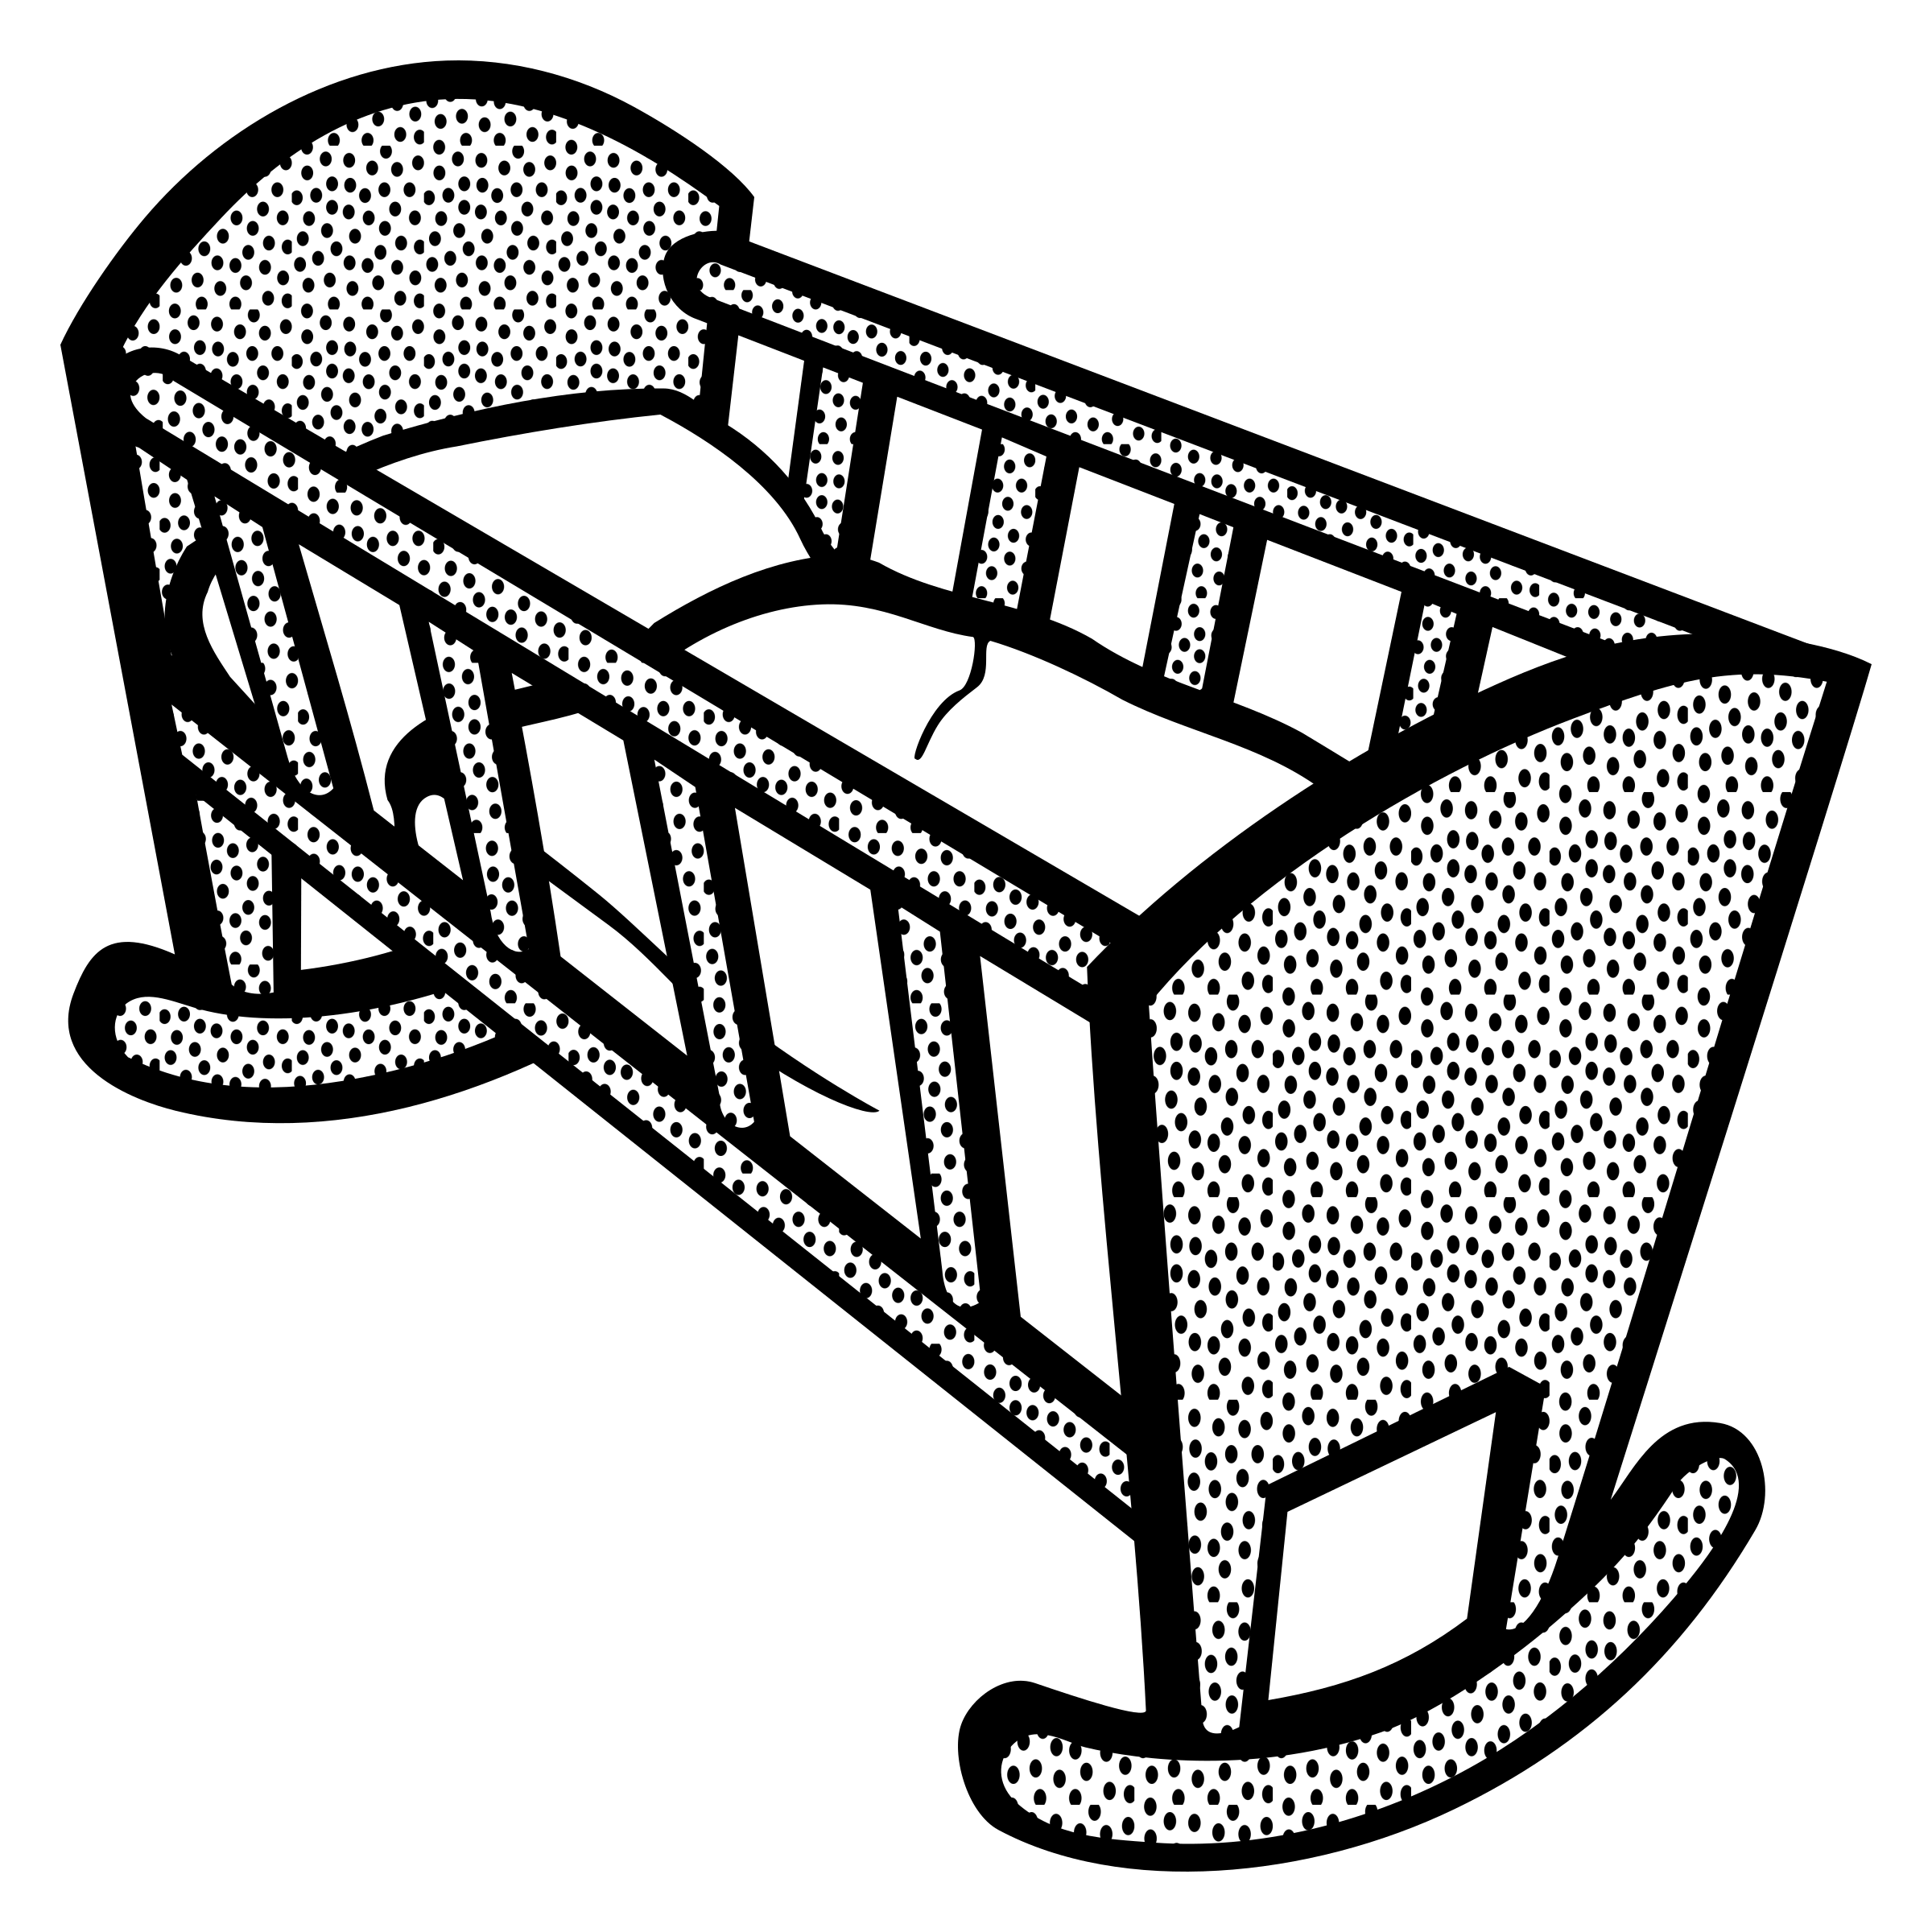 Free Cliparts Wooden Crib Download Free Clip Art Free Clip Art On Clipart Library